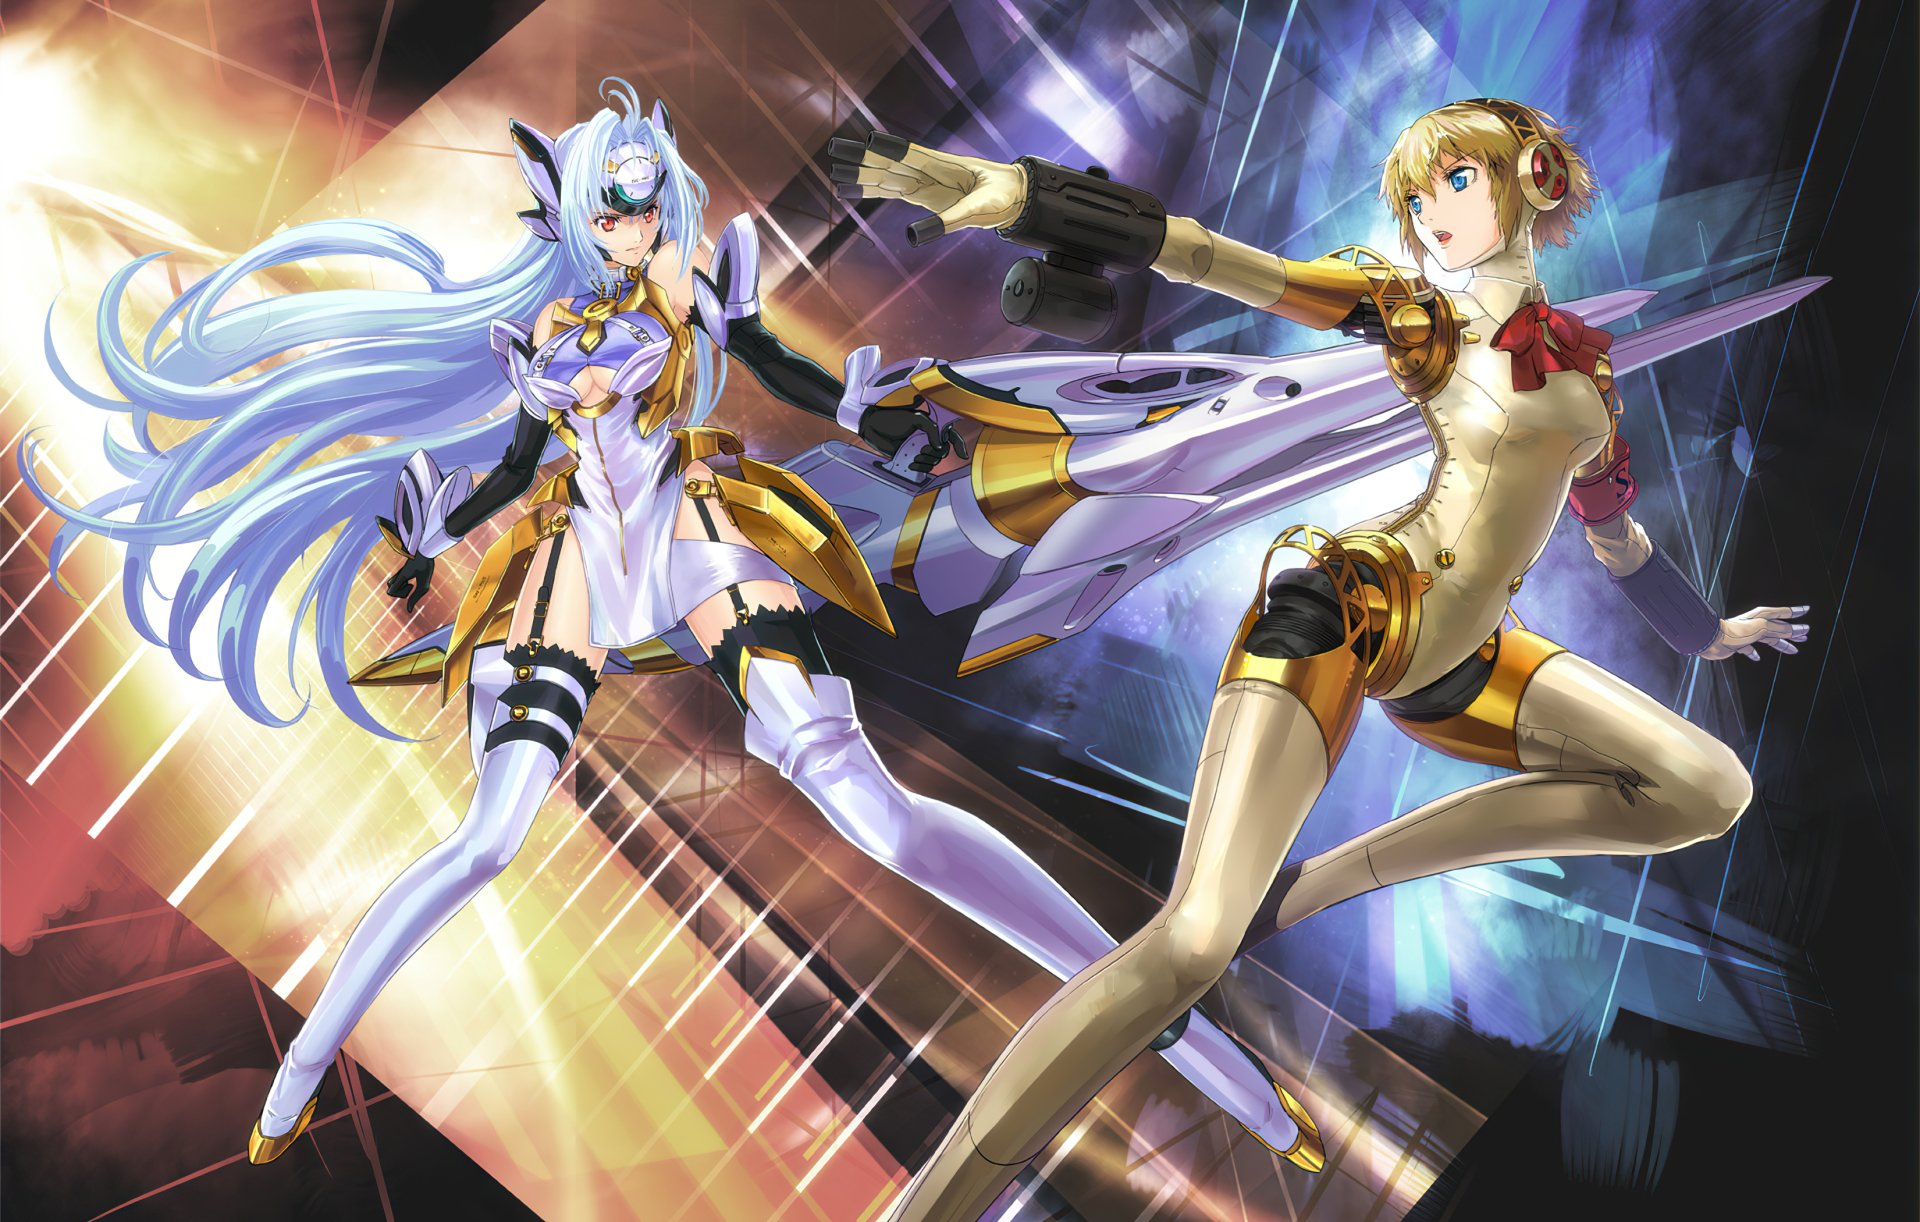 Video Game - Crossover  Xenosaga Persona Aigis (Persona) KOS-MOS (Xenosaga) Wallpaper